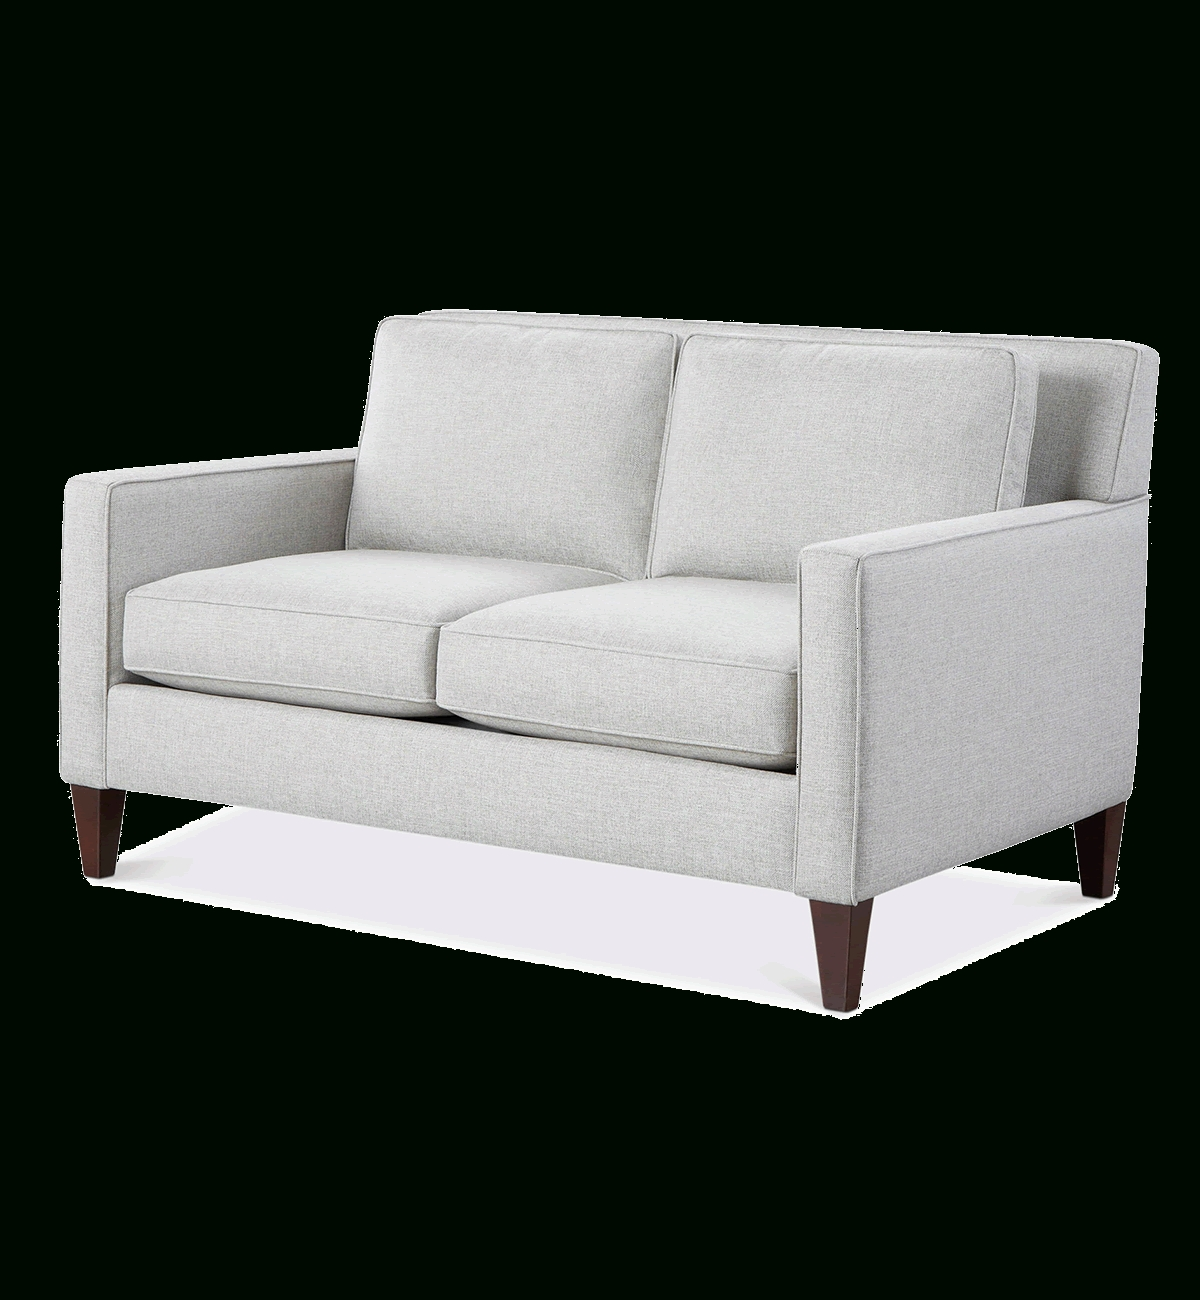 Leather Couches And Sofas – Macy's Pertaining To Favorite Macys Leather Sofas (View 3 of 20)